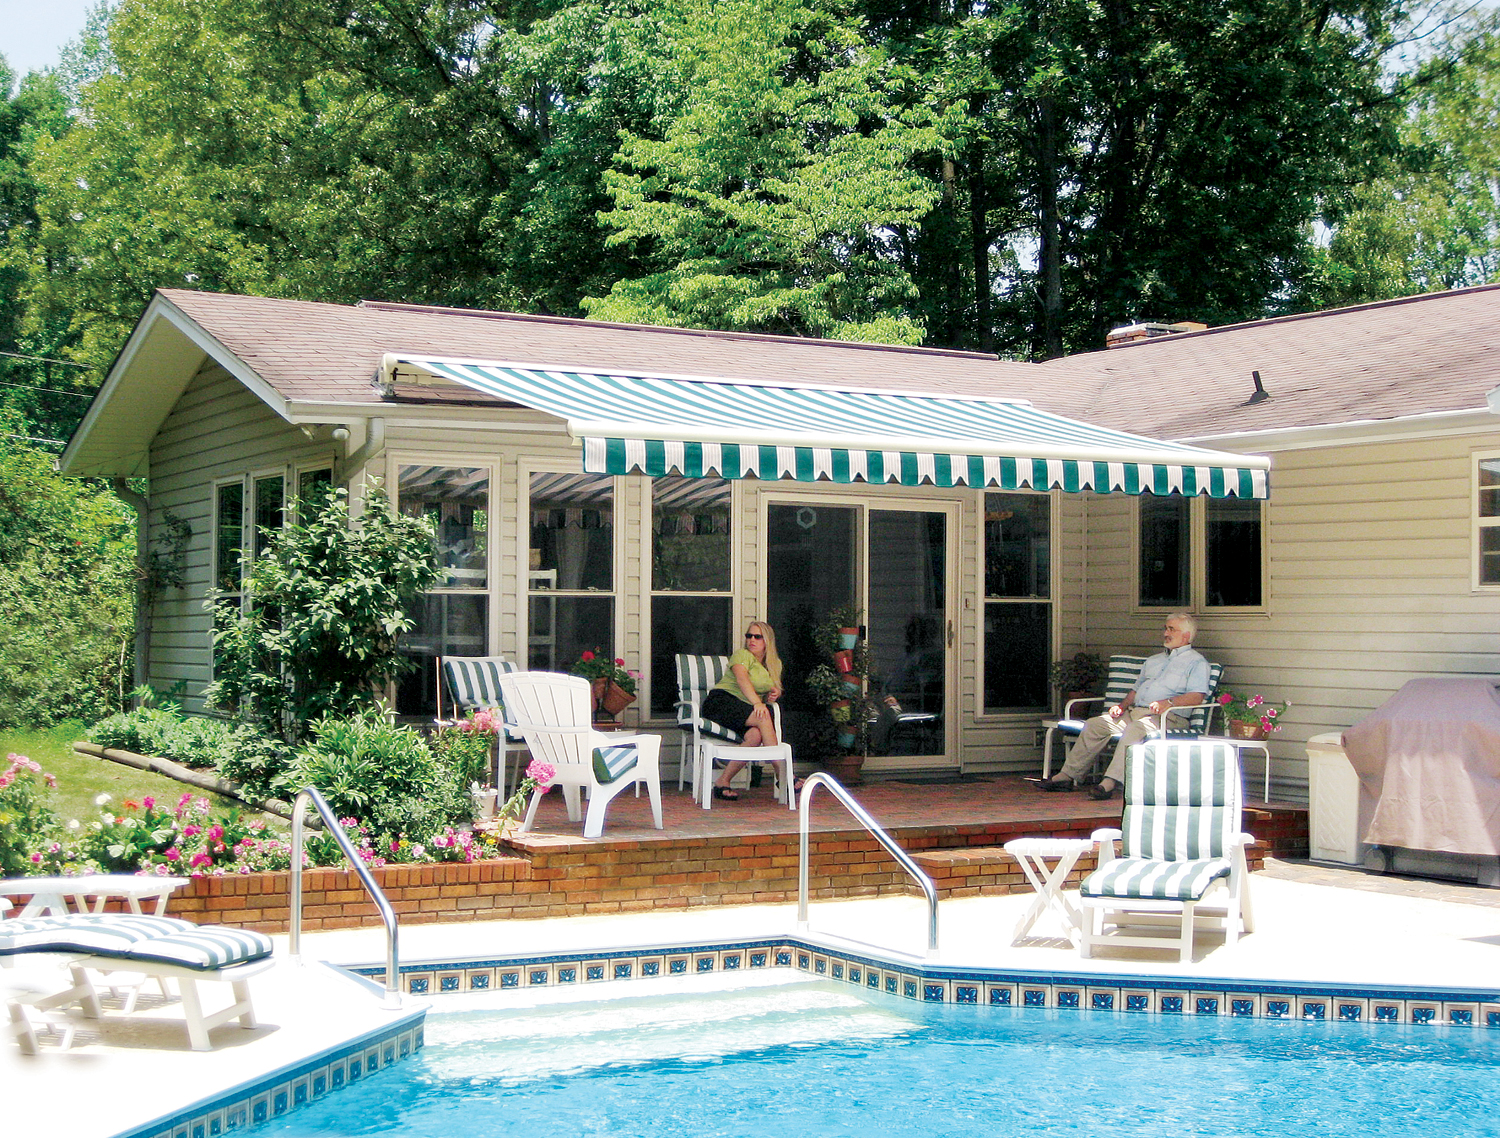 Betterliving fabric shades marketing patio cover recent posts sunrooms - Retractable Awning By Betterliving Awnings Of Pittsburgh